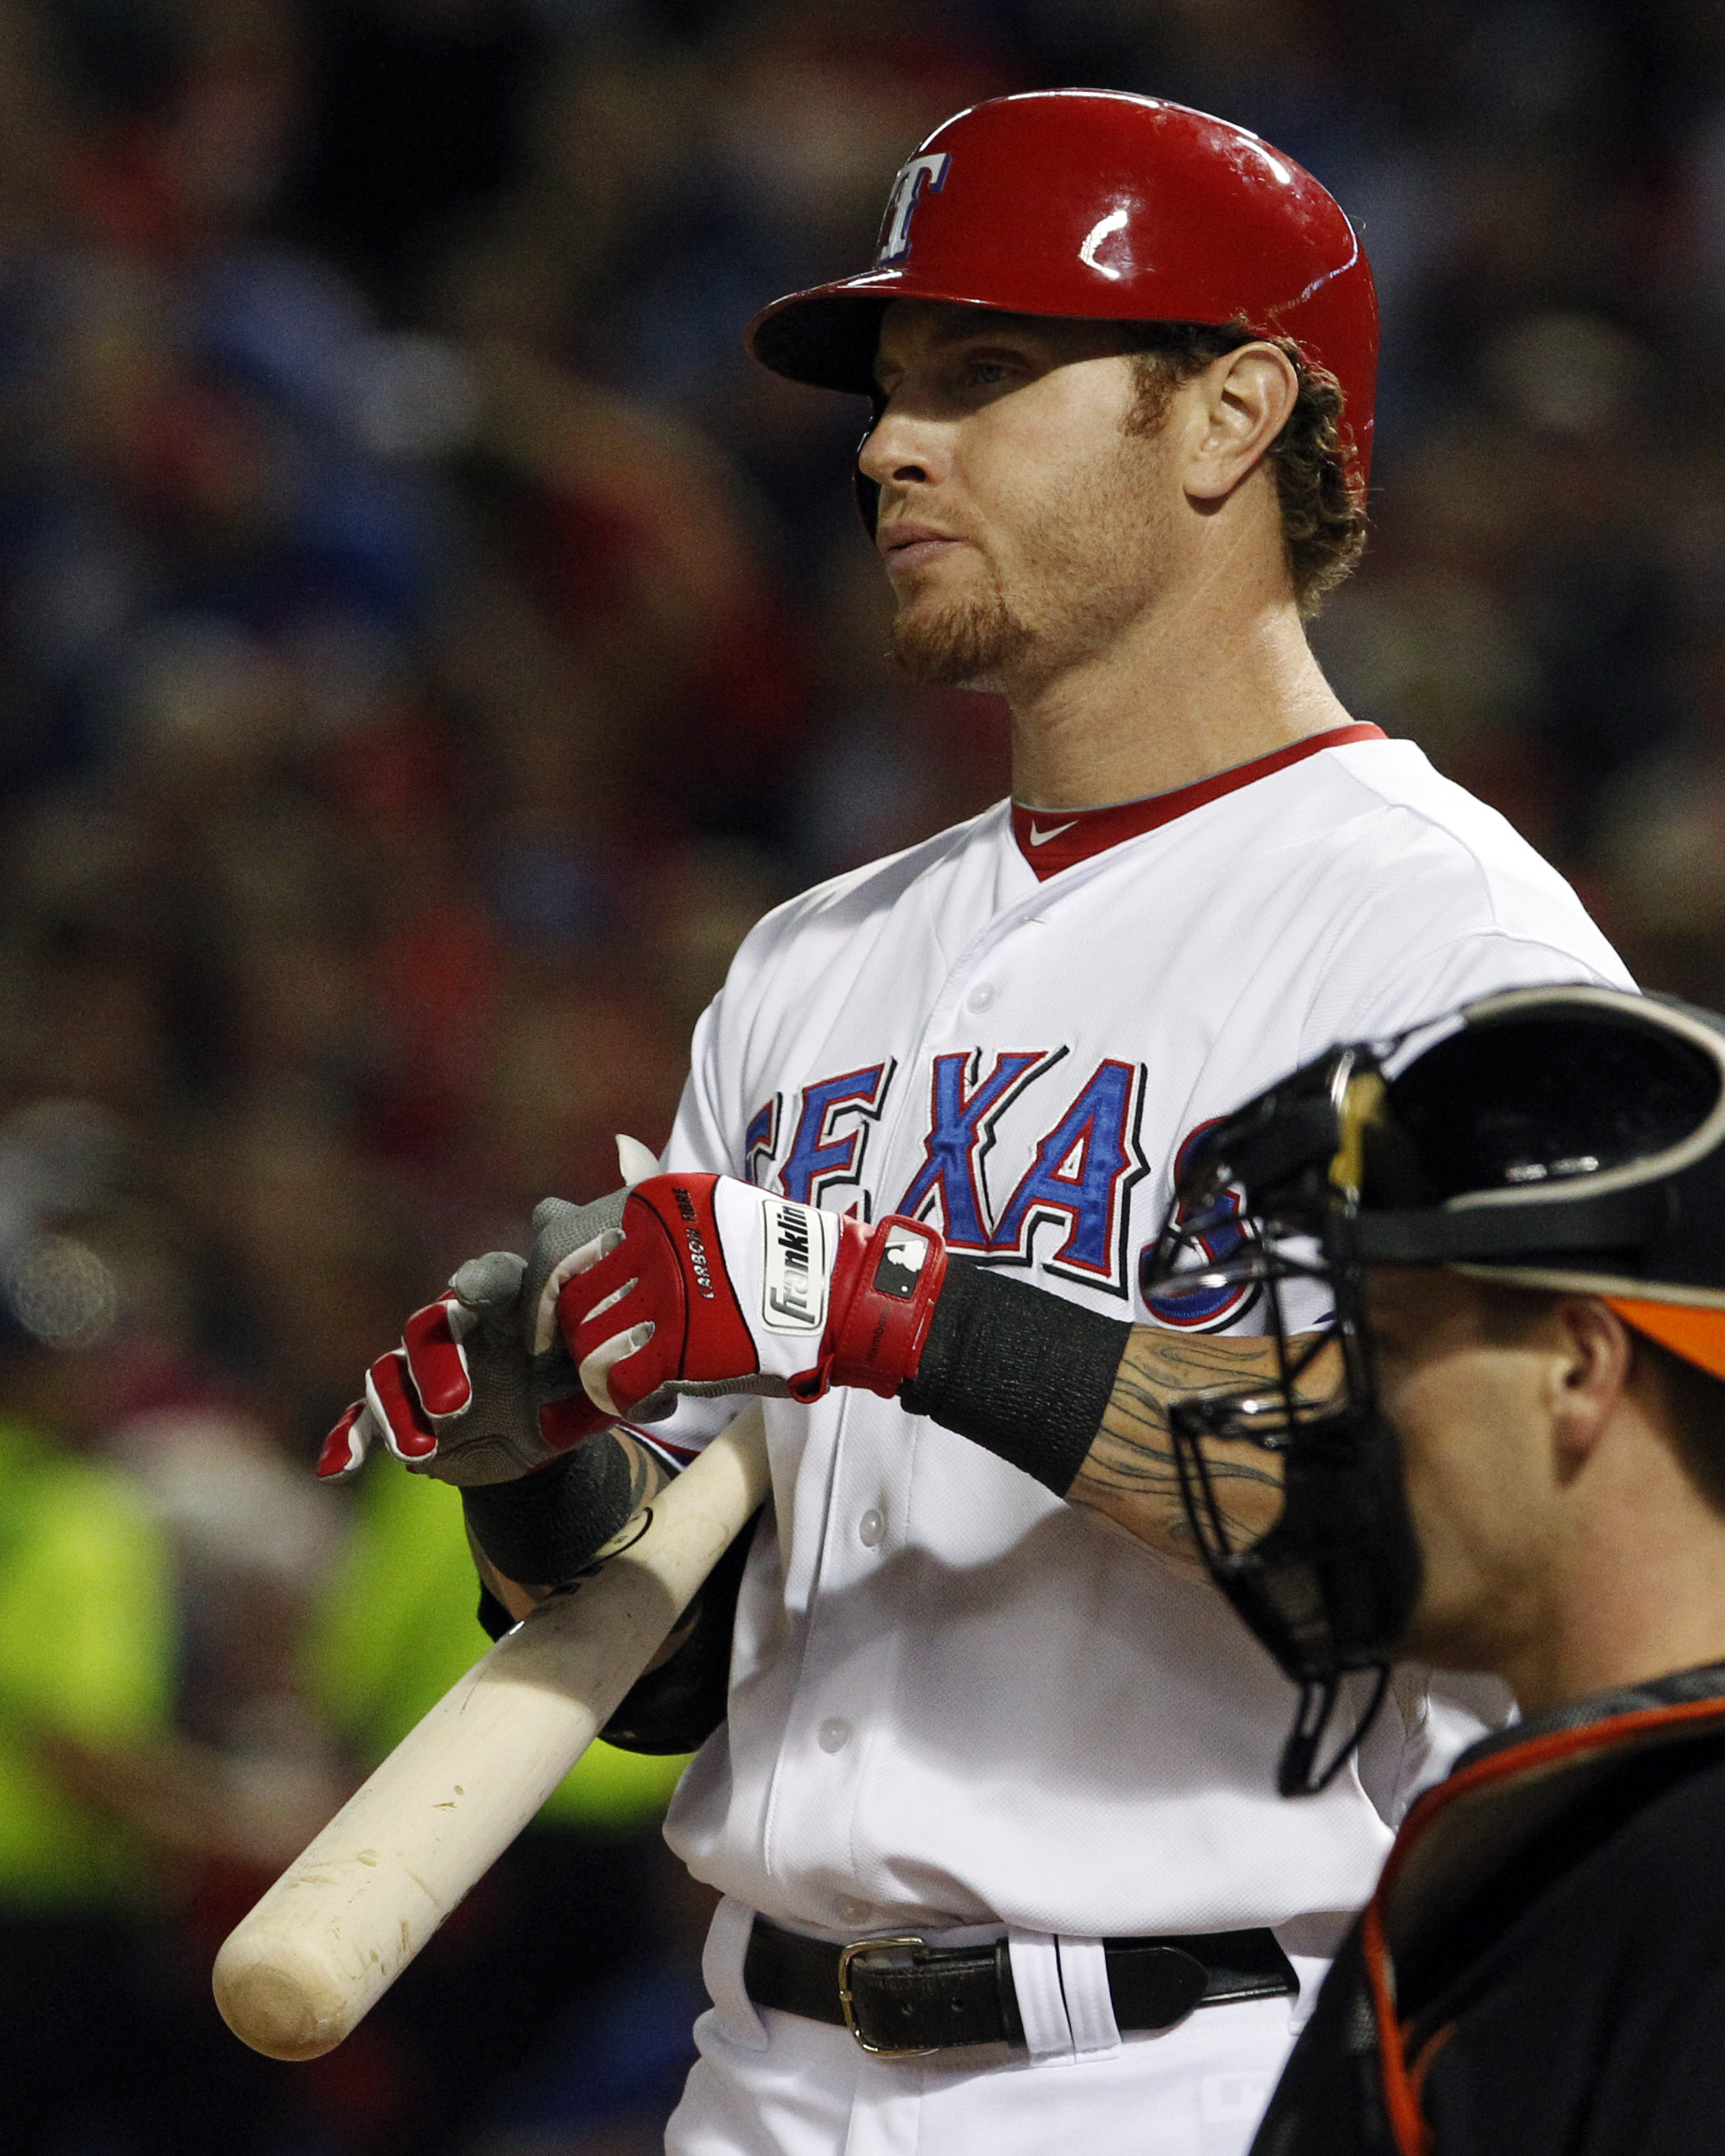 ADVANCE FOR WEEKEND EDITIONS, MAY 8-10 - FILE - In this Oct. 5, 2012, file photo,  Texas Rangers center fielder Josh Hamilton (32) reacts to striking out against the Baltimore Orioles during an American League wild-card playoff baseball game n Arlington,